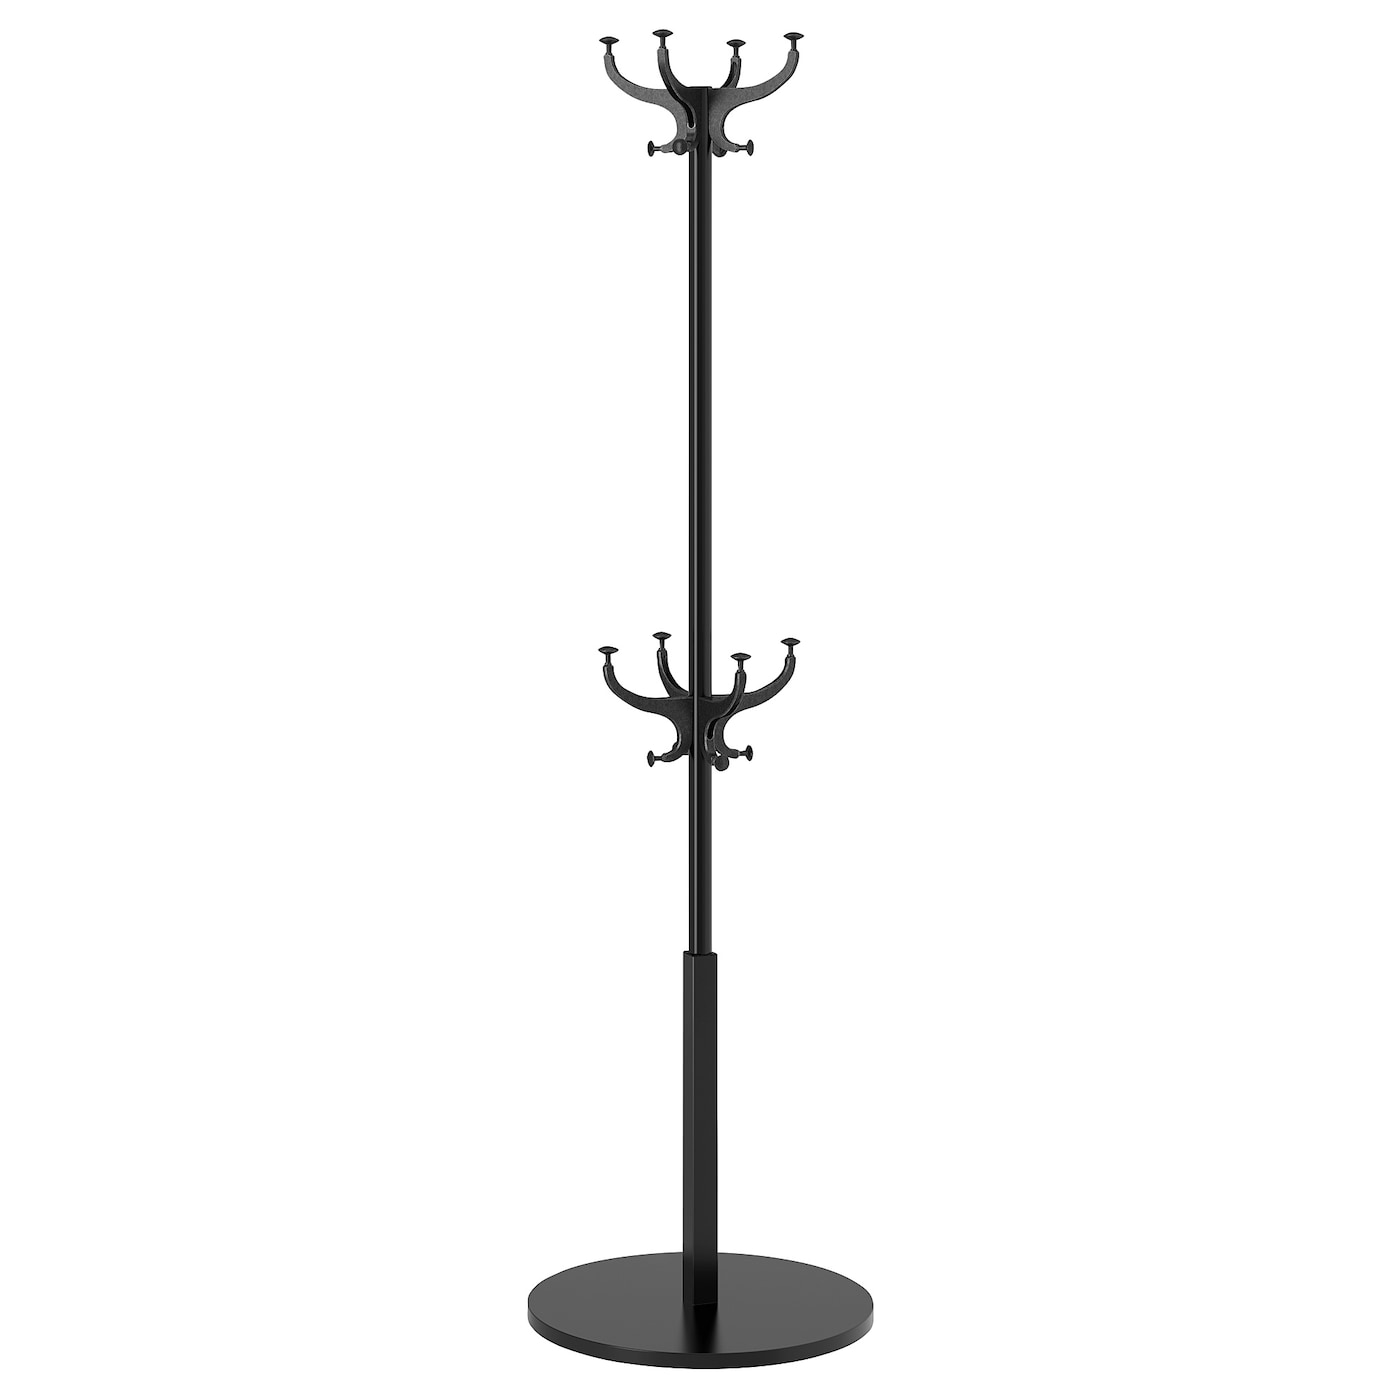 IKEA HEMNES hat and coat stand Also stands steady on an uneven floor since the feet can be adjusted.